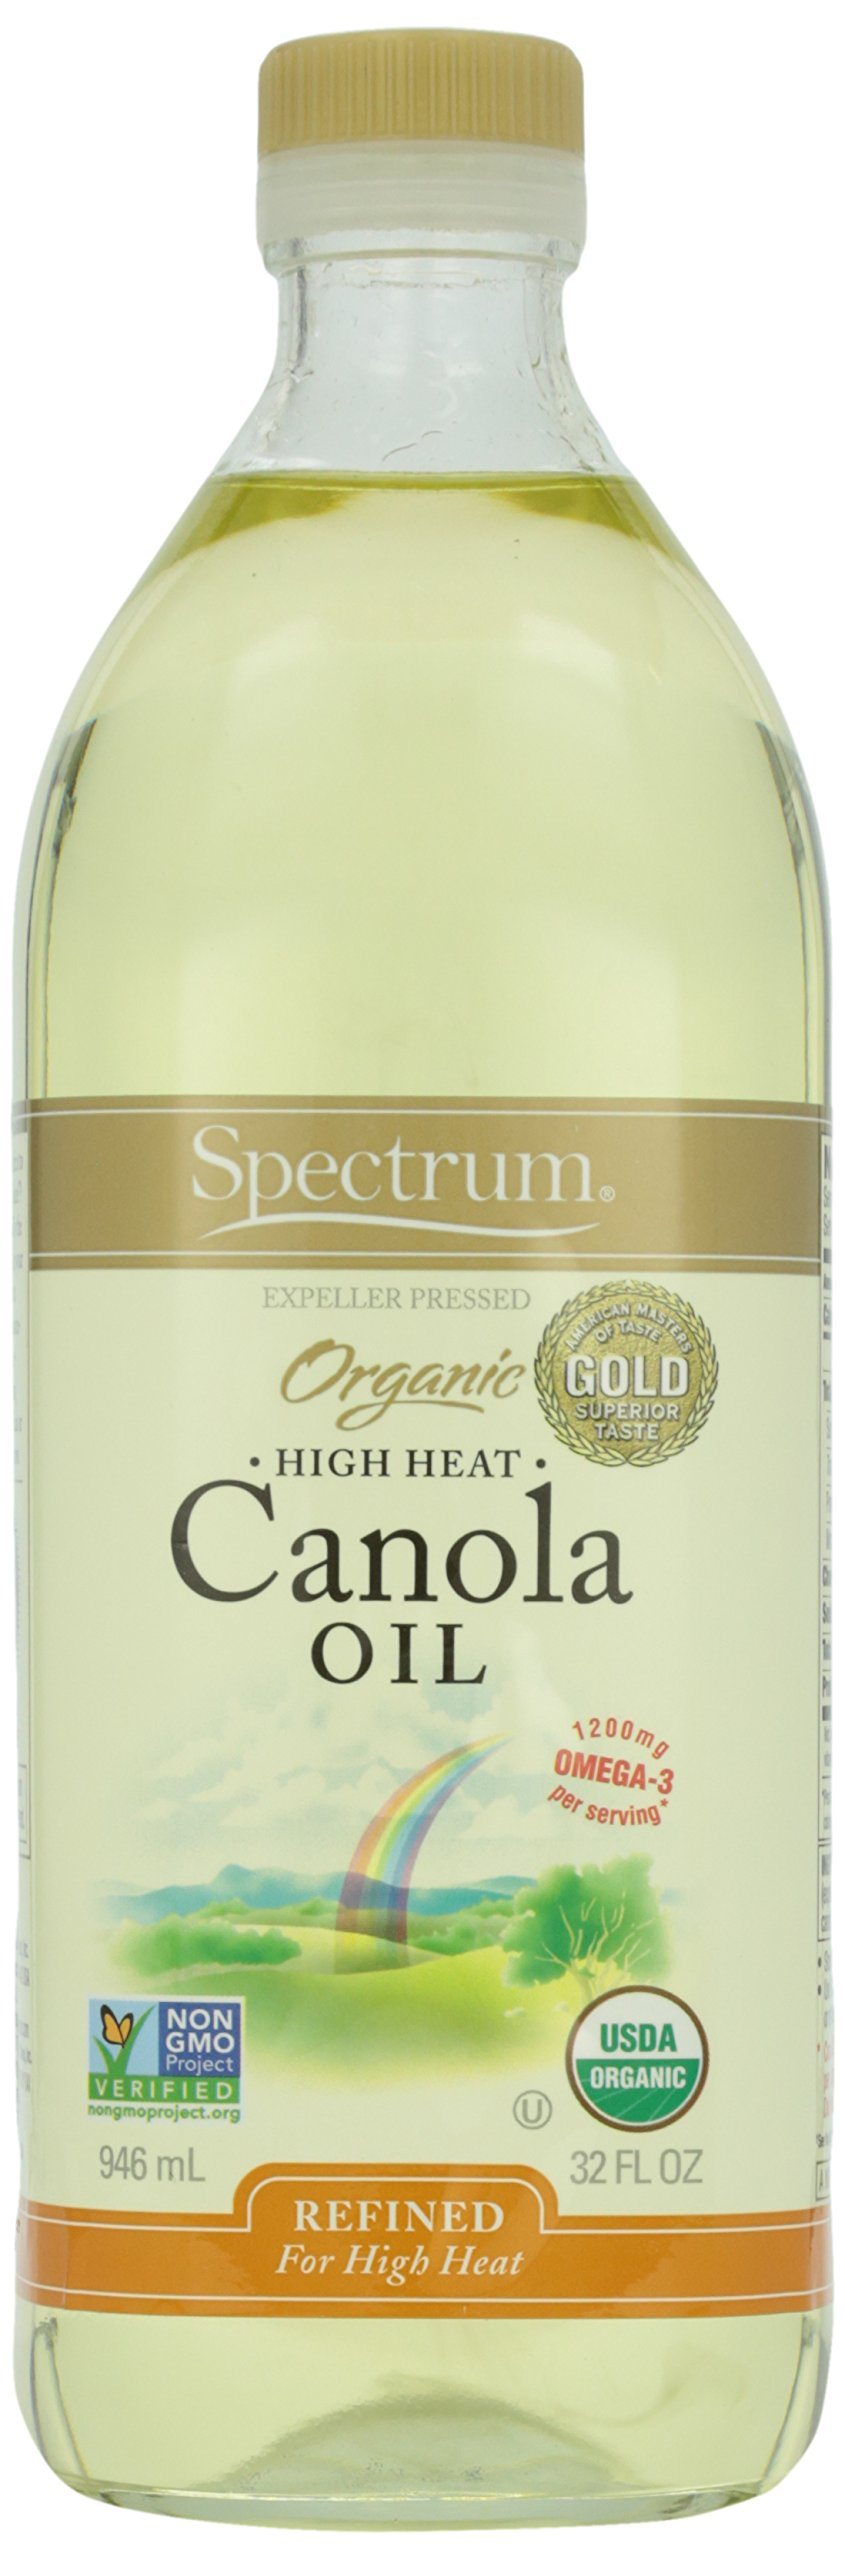 Spectrum Organic Canola Oil, 32 oz